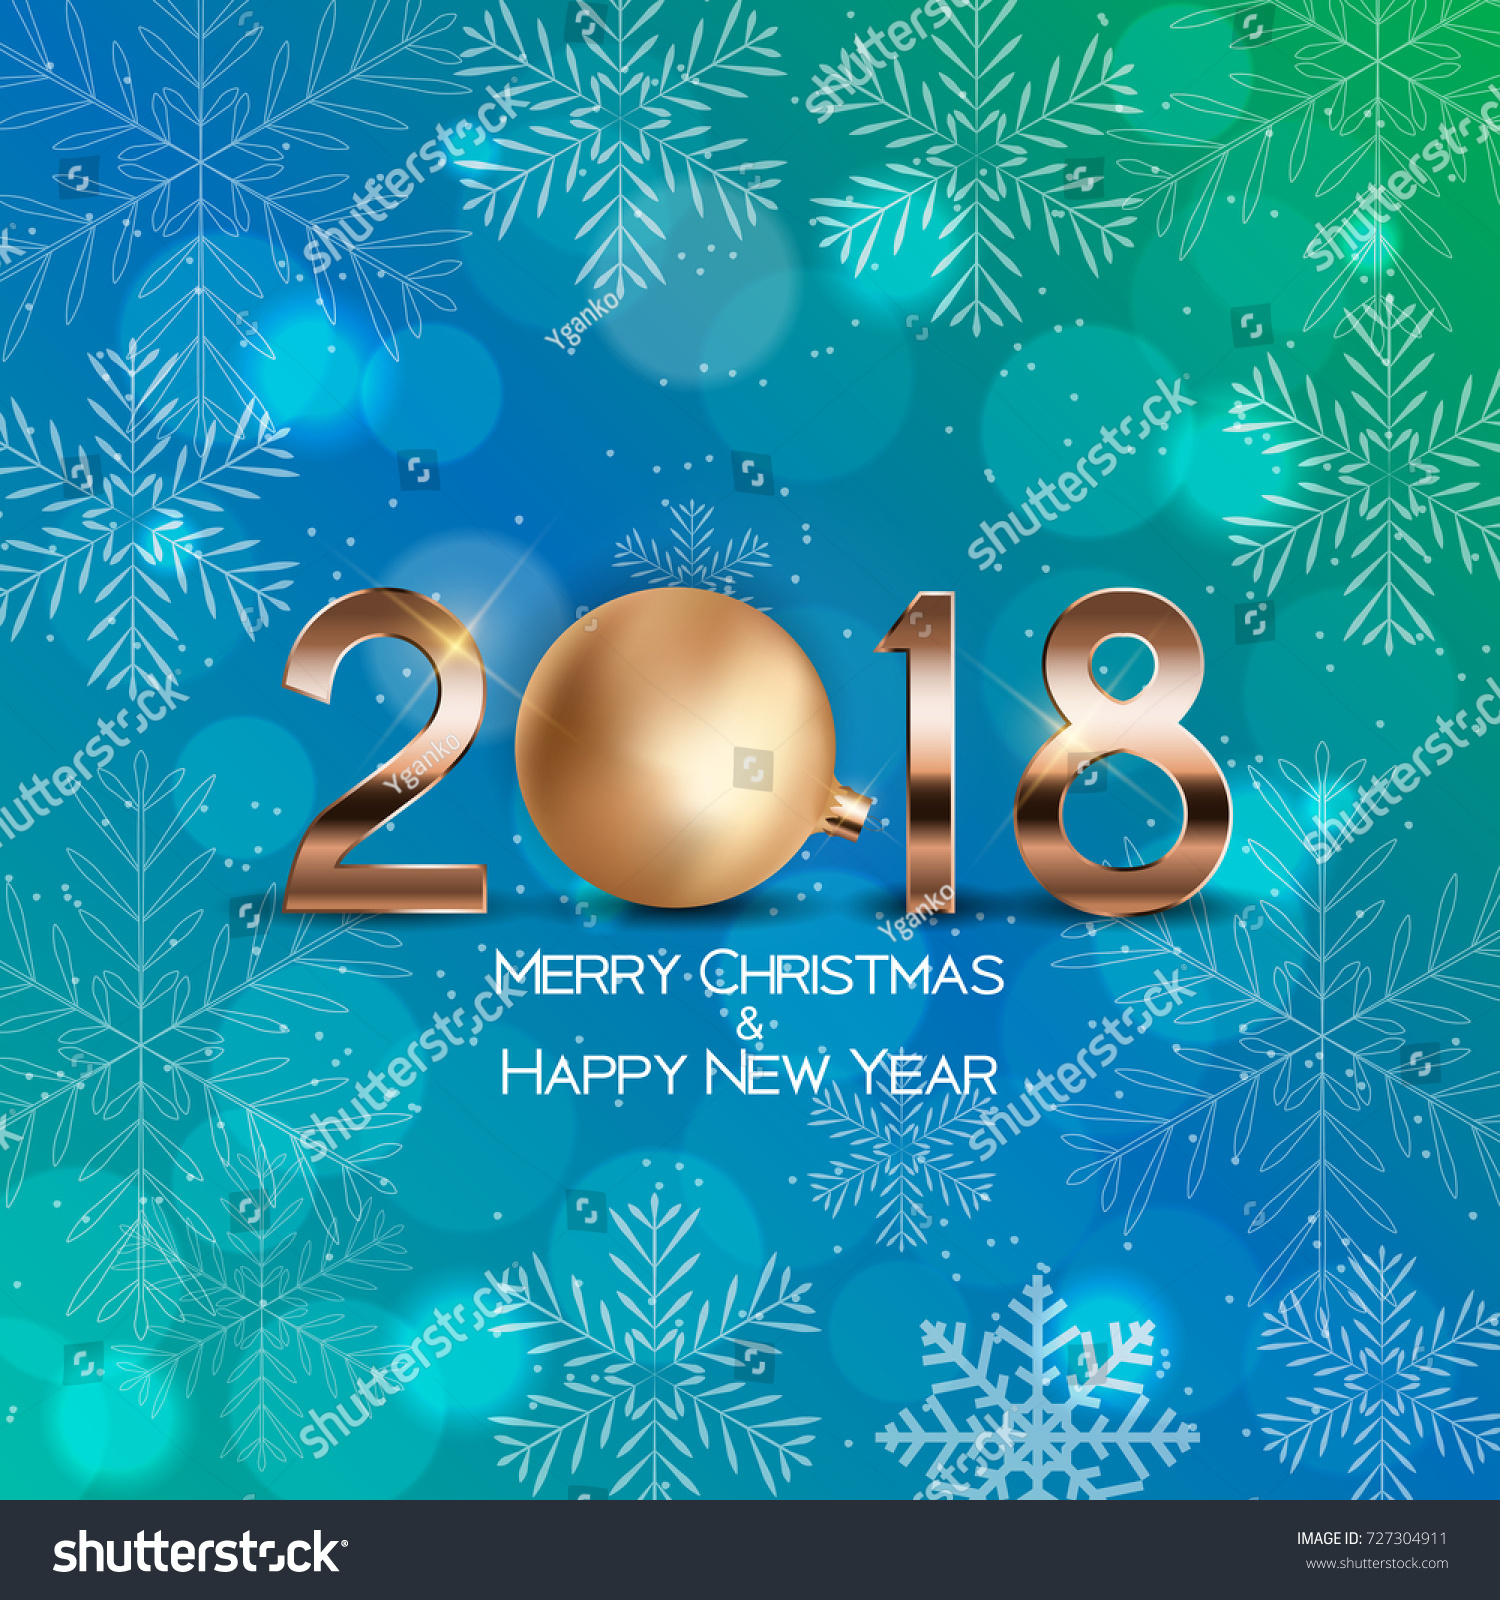 abstract beauty christmas and 2018 new year background vector illustration eps10